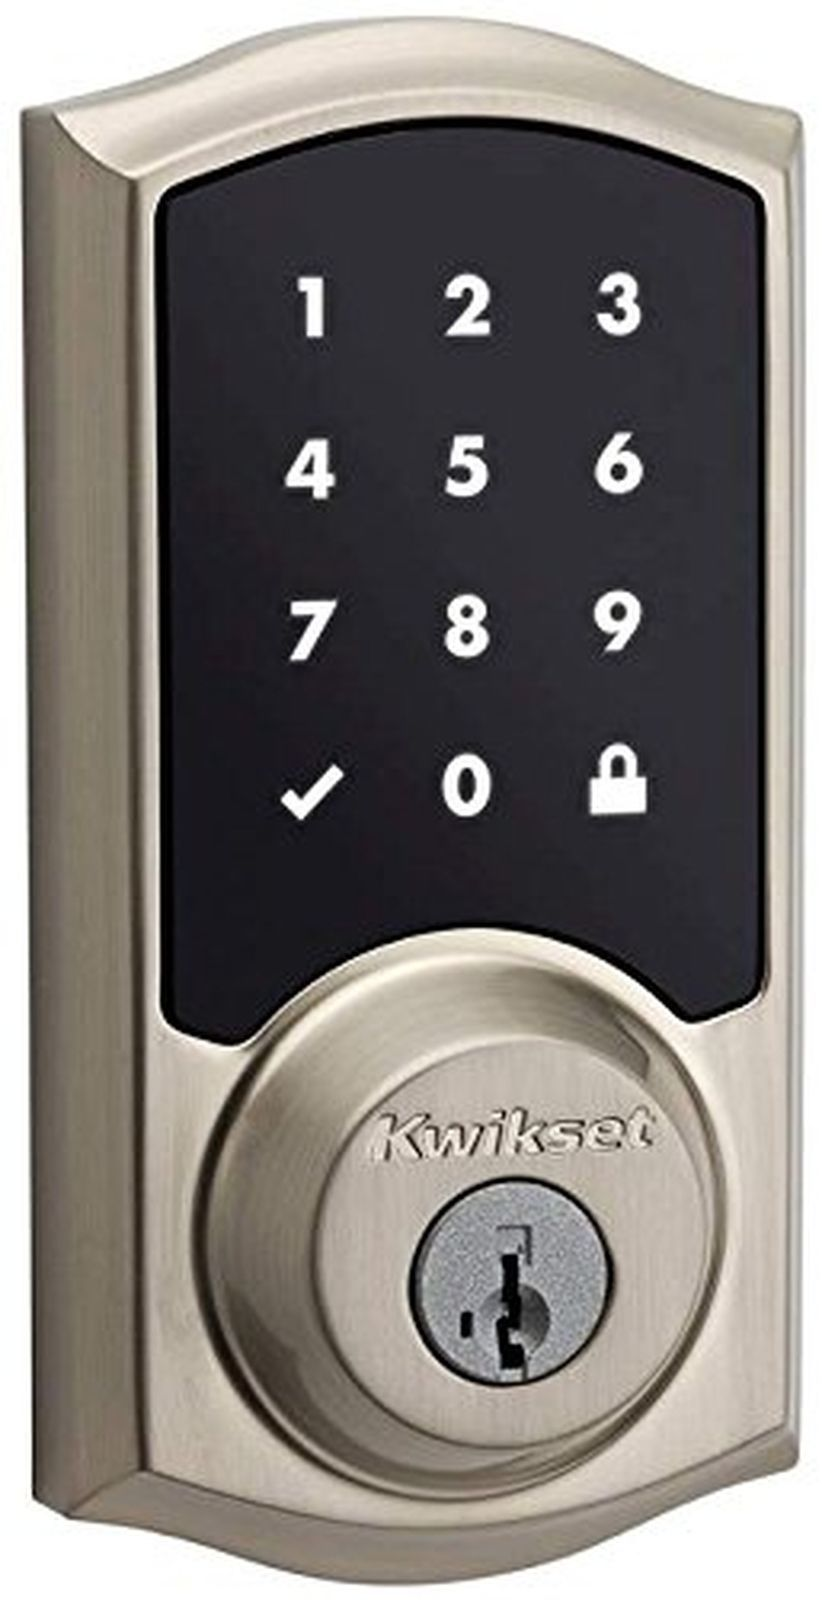 Kwikset 99150-002 SmartCode 915 Touchscreen Electronic UL Deadbolt with Smart...